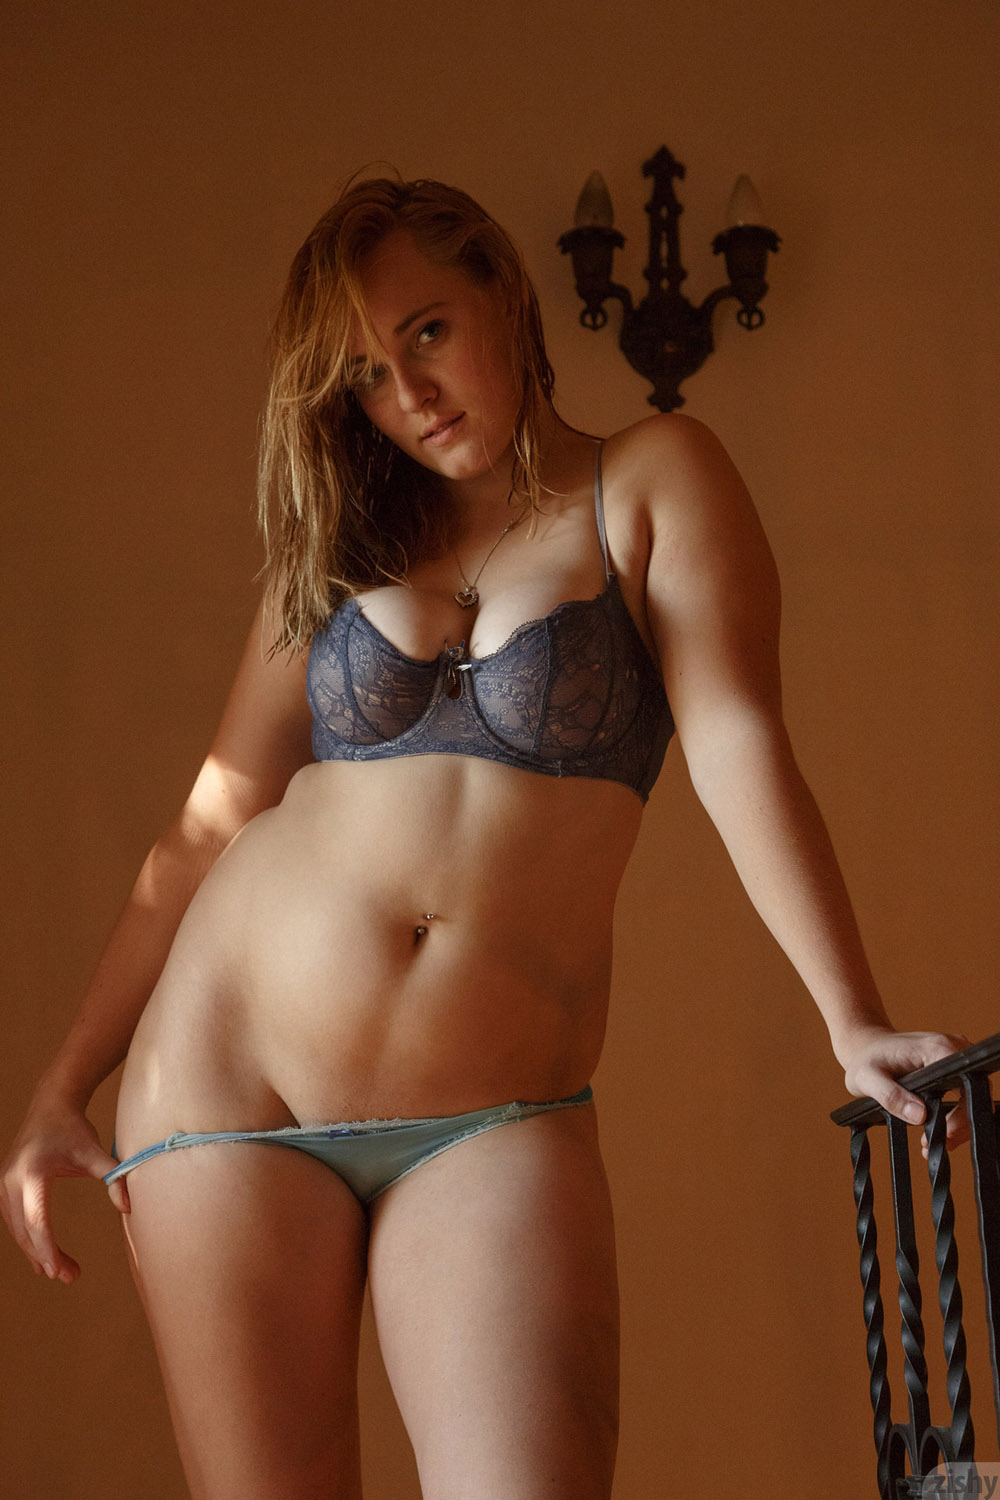 Deirdre Collins Thick Love for Zishy - Curvy Erotic